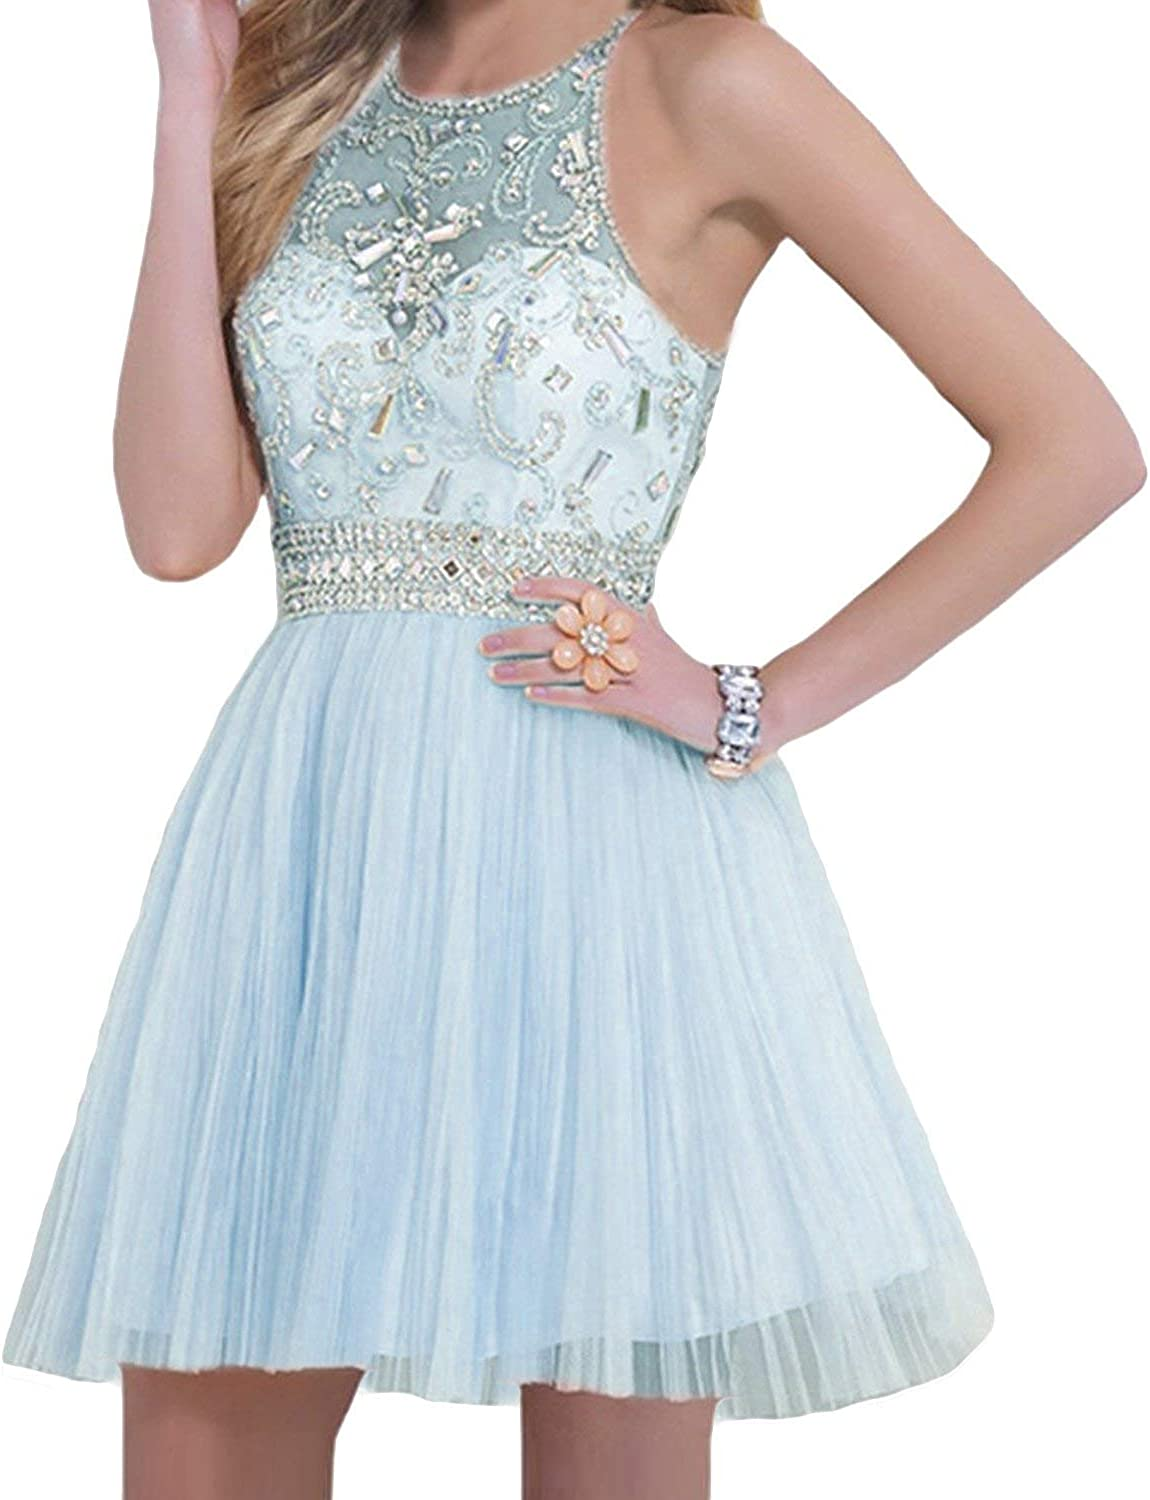 CharmingBridal Round Neck Beaded Juniors Graduation Short Prom Homecoming Dress